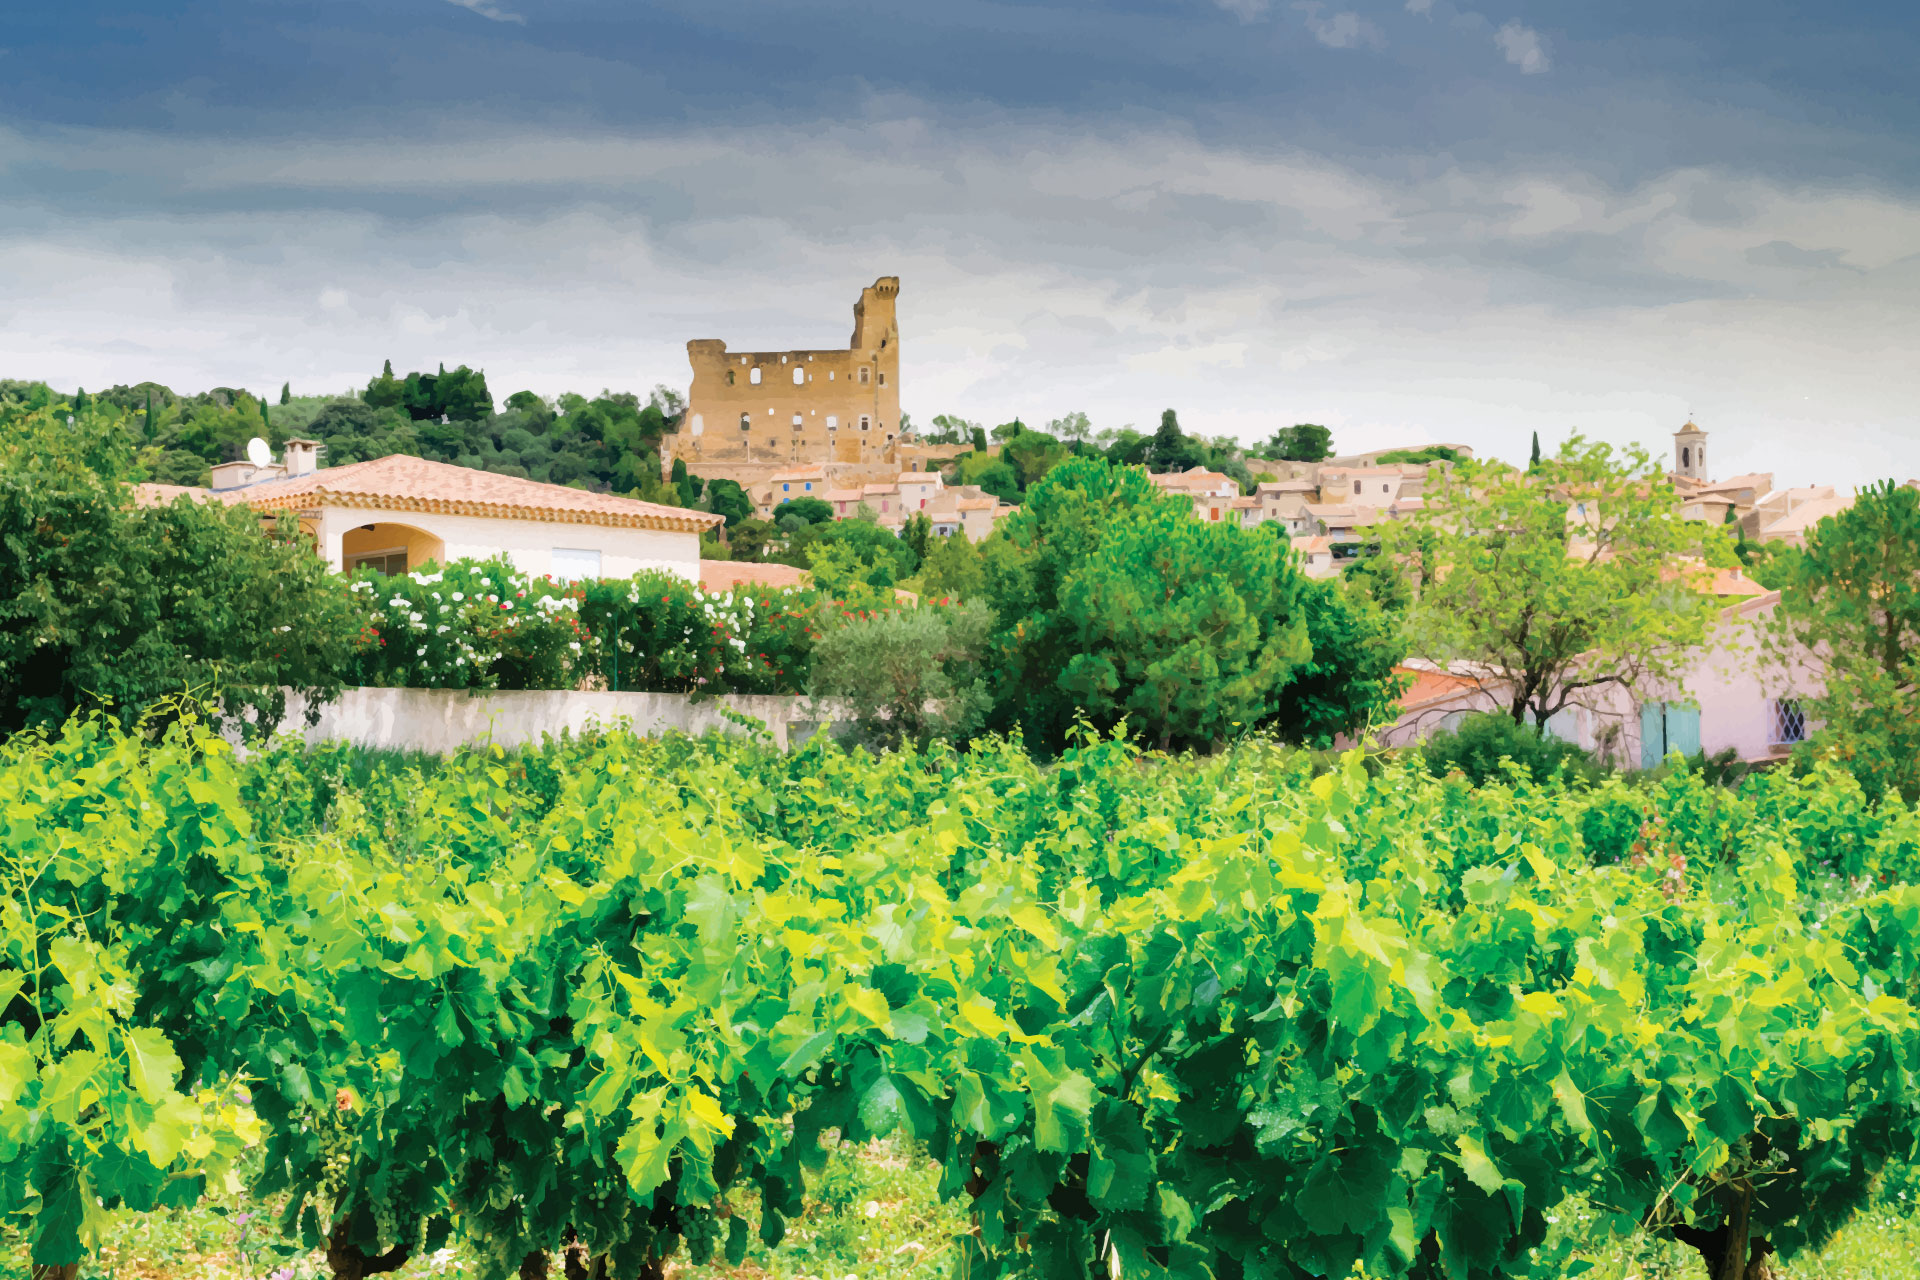 Vineyard and buildings in Châteauneuf-du-Pape